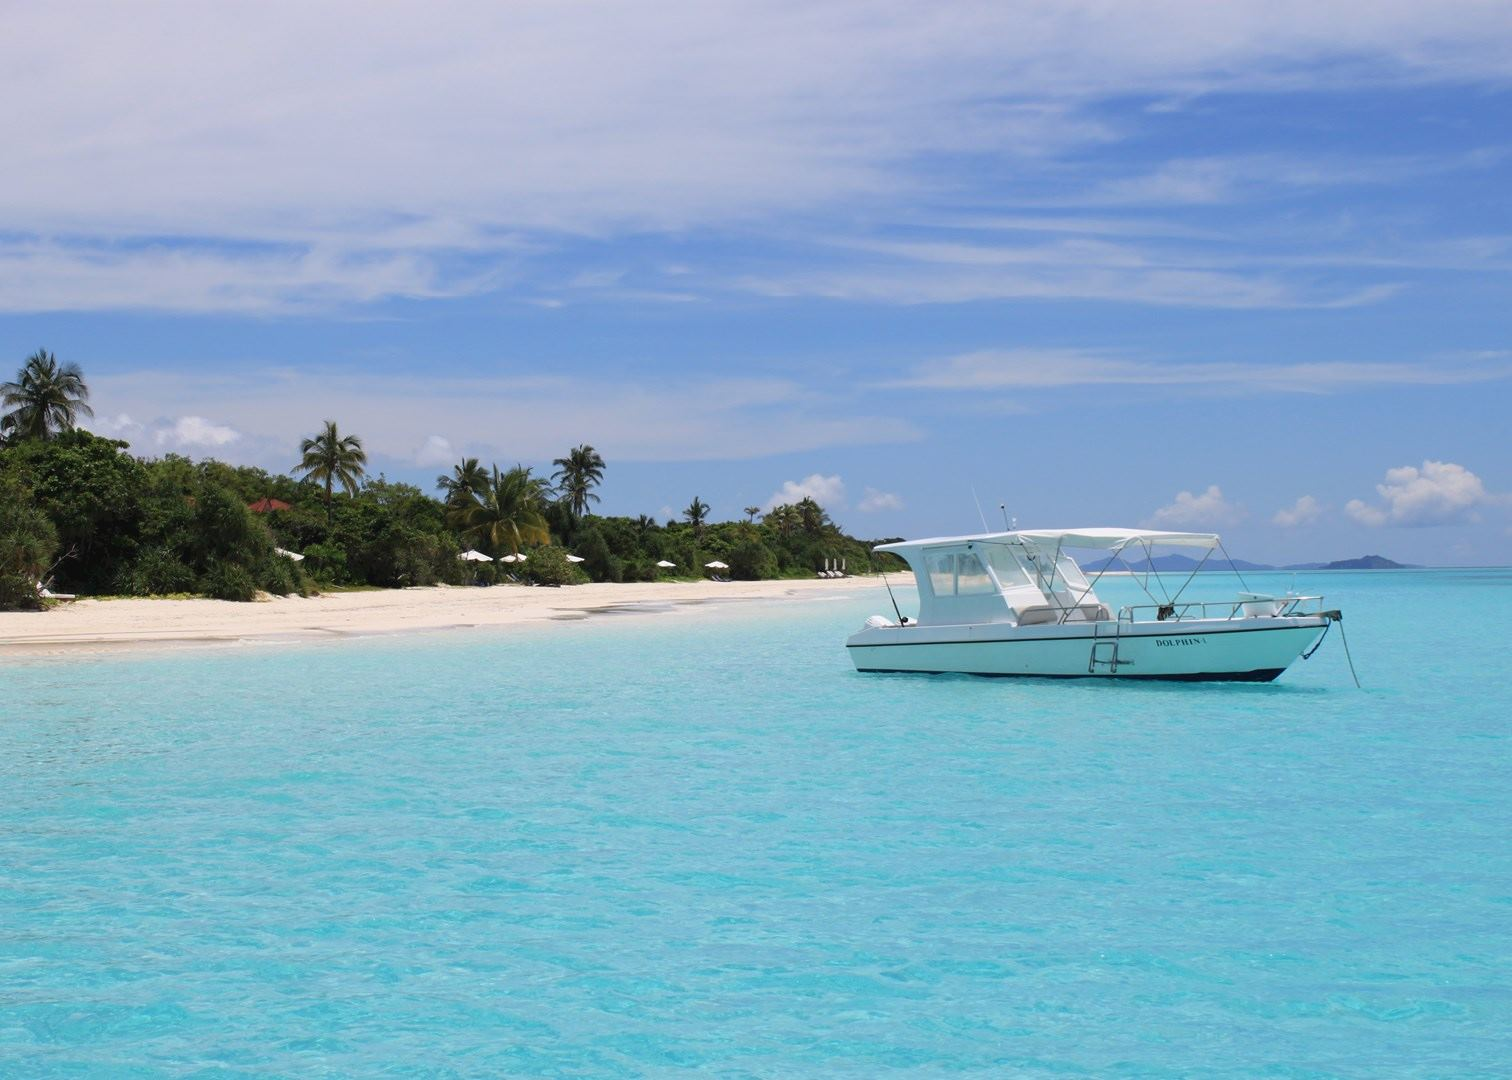 Private Beach, Amanpulo, Palawan, Philippines